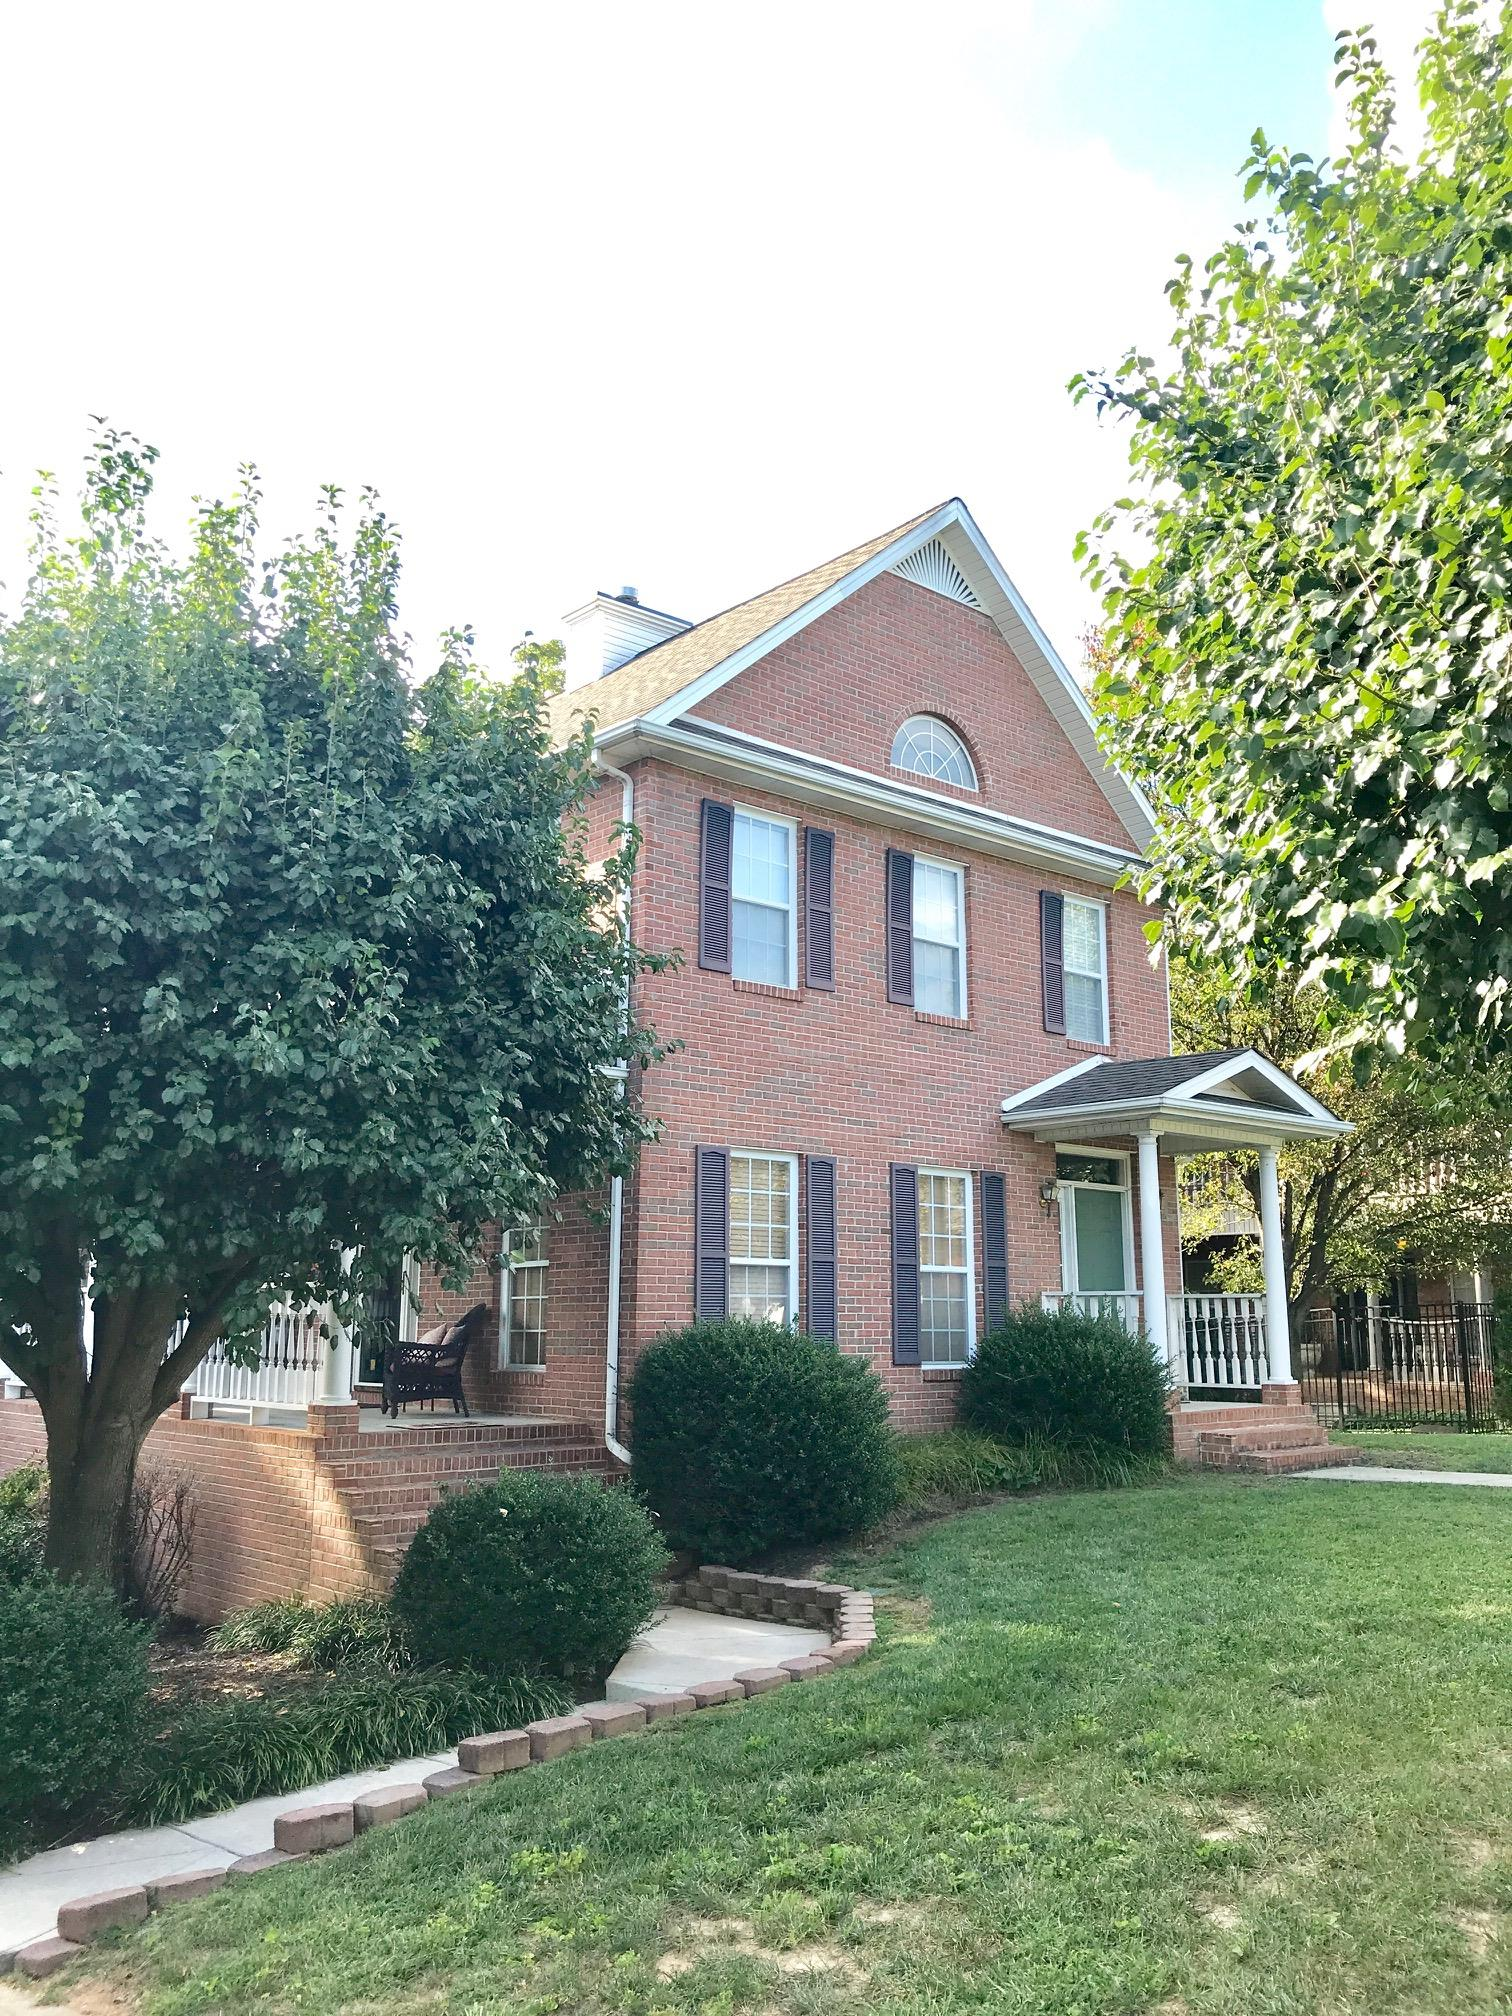 122 Eighteen Grand Pl, Cookeville, TN 38506 - Cookeville, TN real estate listing